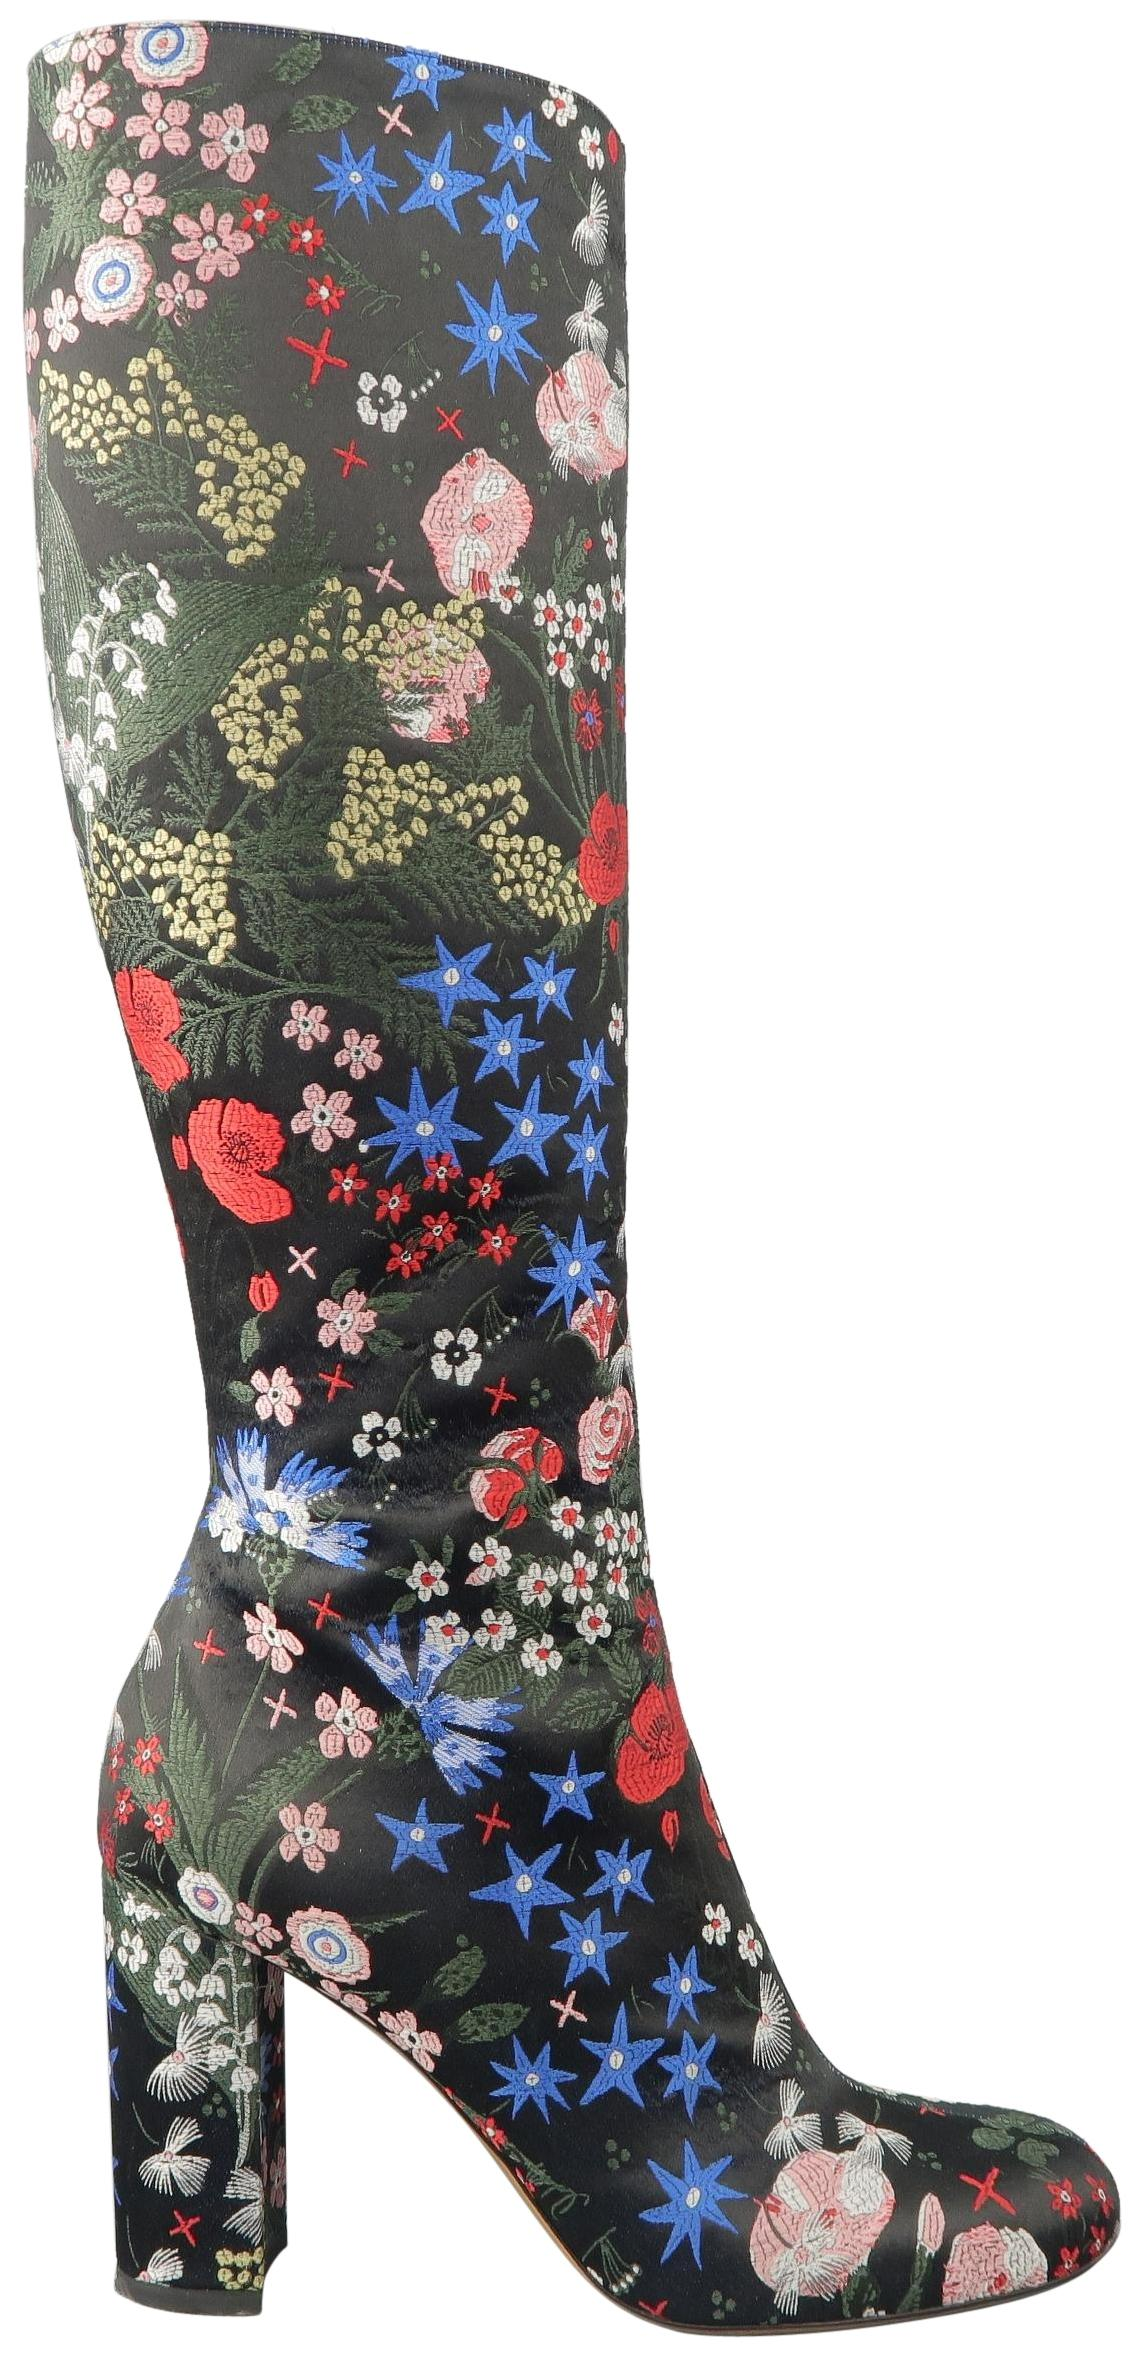 Valentino Black Multi Color Floral Embroidered Satin Heels US Knee High Boots/Booties Size US Heels 8.5 Regular (M, B) 4cc29b